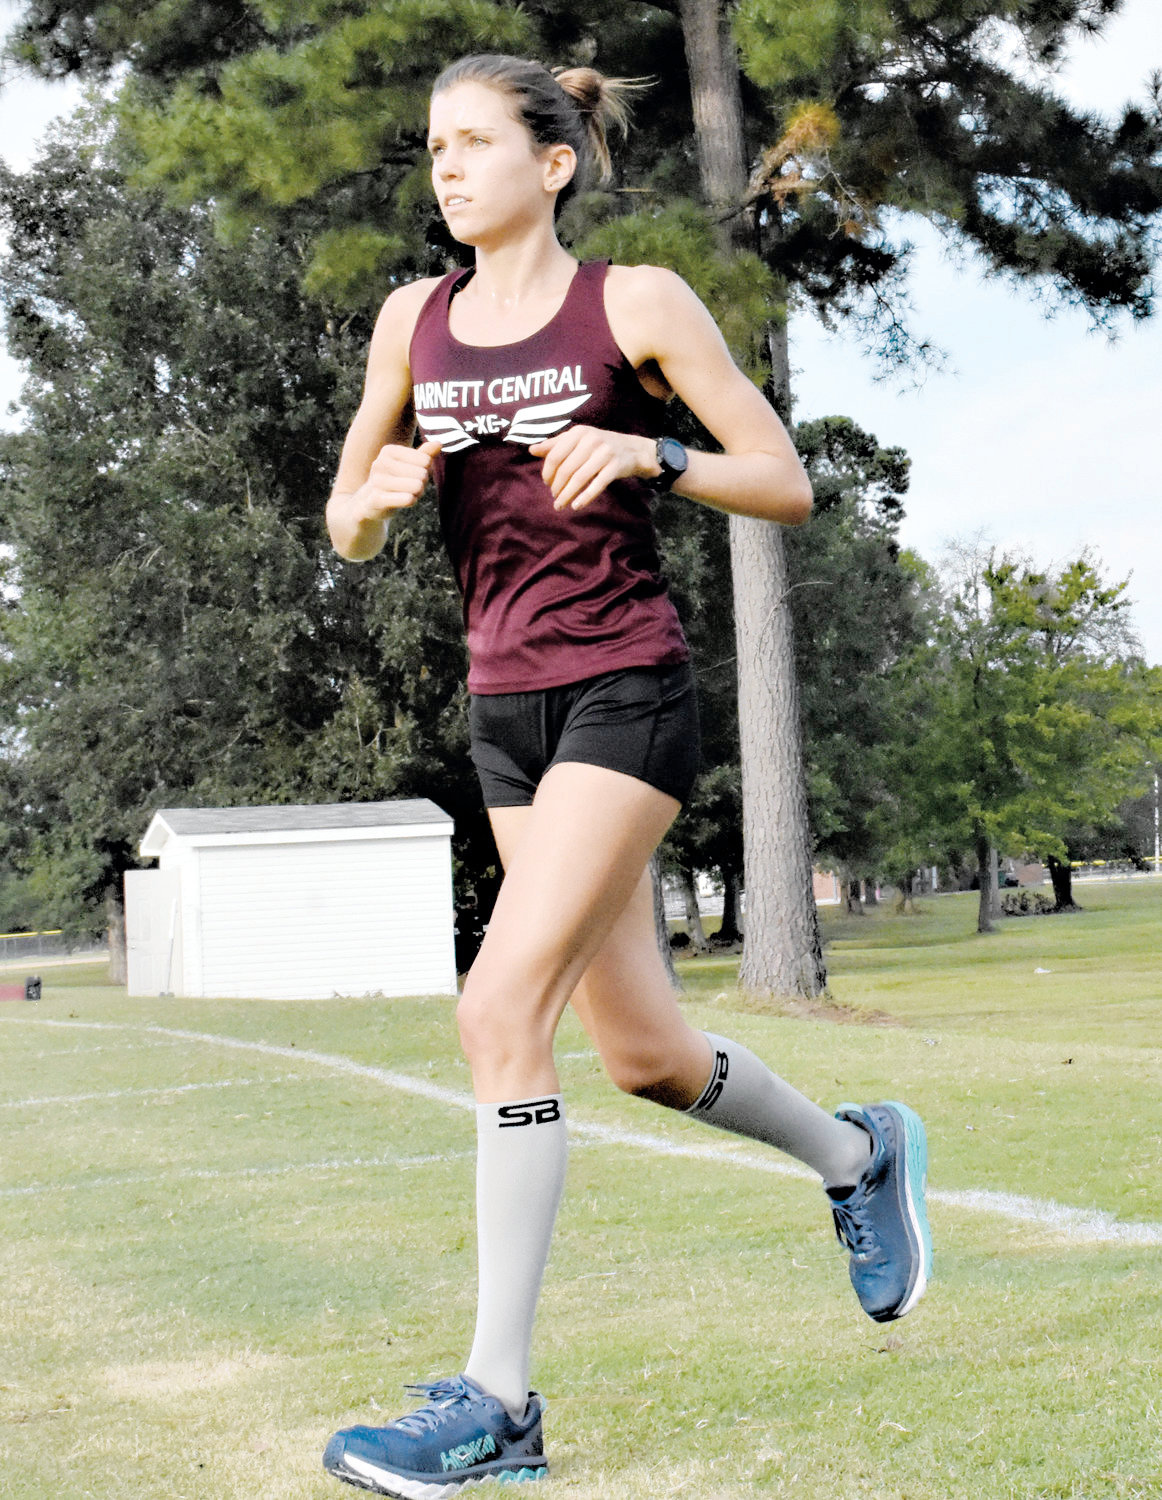 Maggie McCormick helped lead Harnett Central's cross country team to a conference championship and finished as the state runner-up in her junior year.